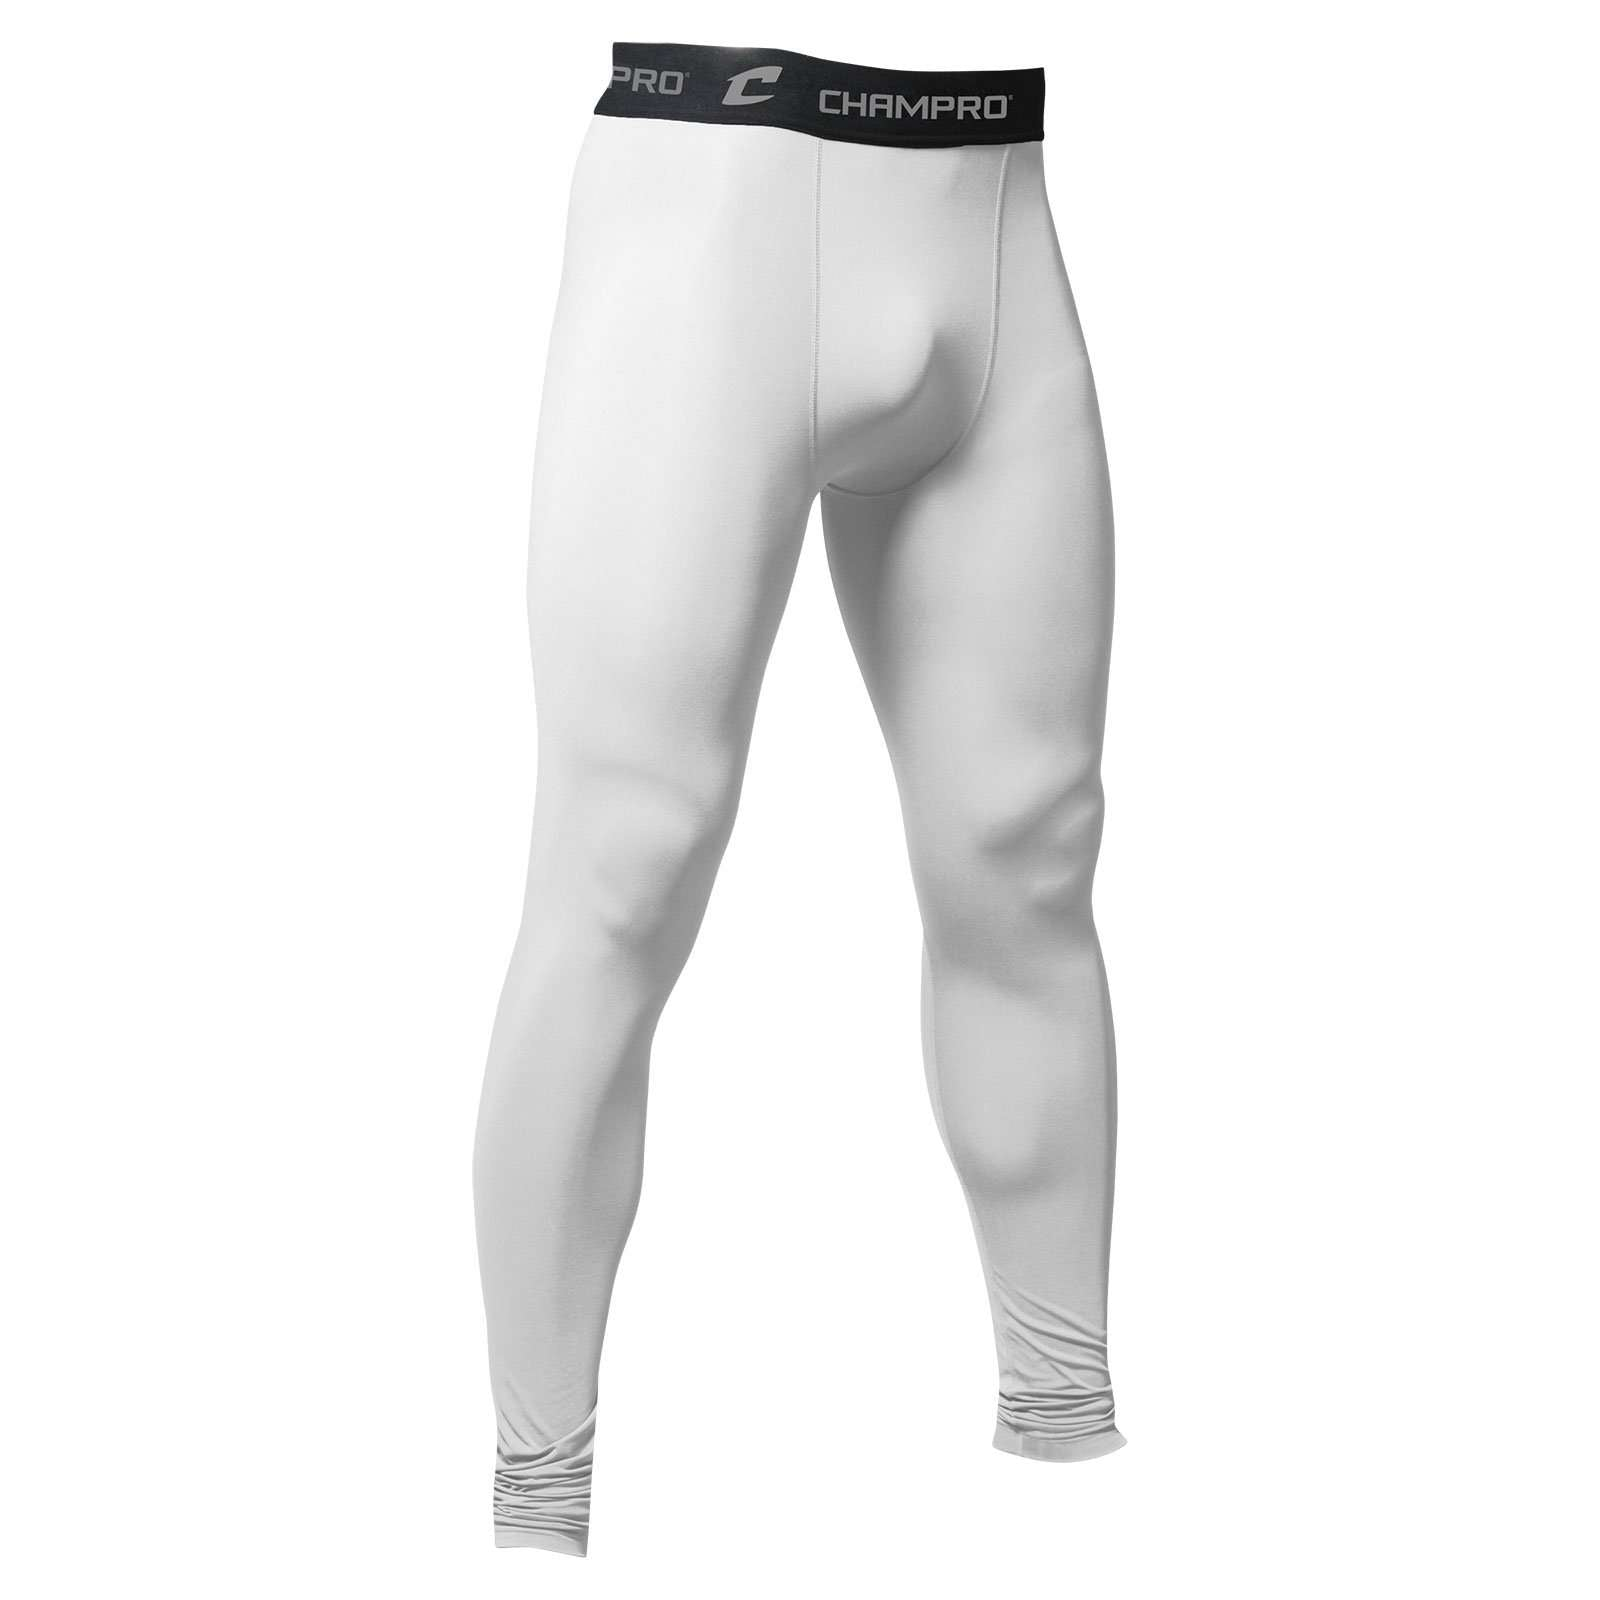 Youth and Adult NEW Champro Lightning Compression Full Length Tights